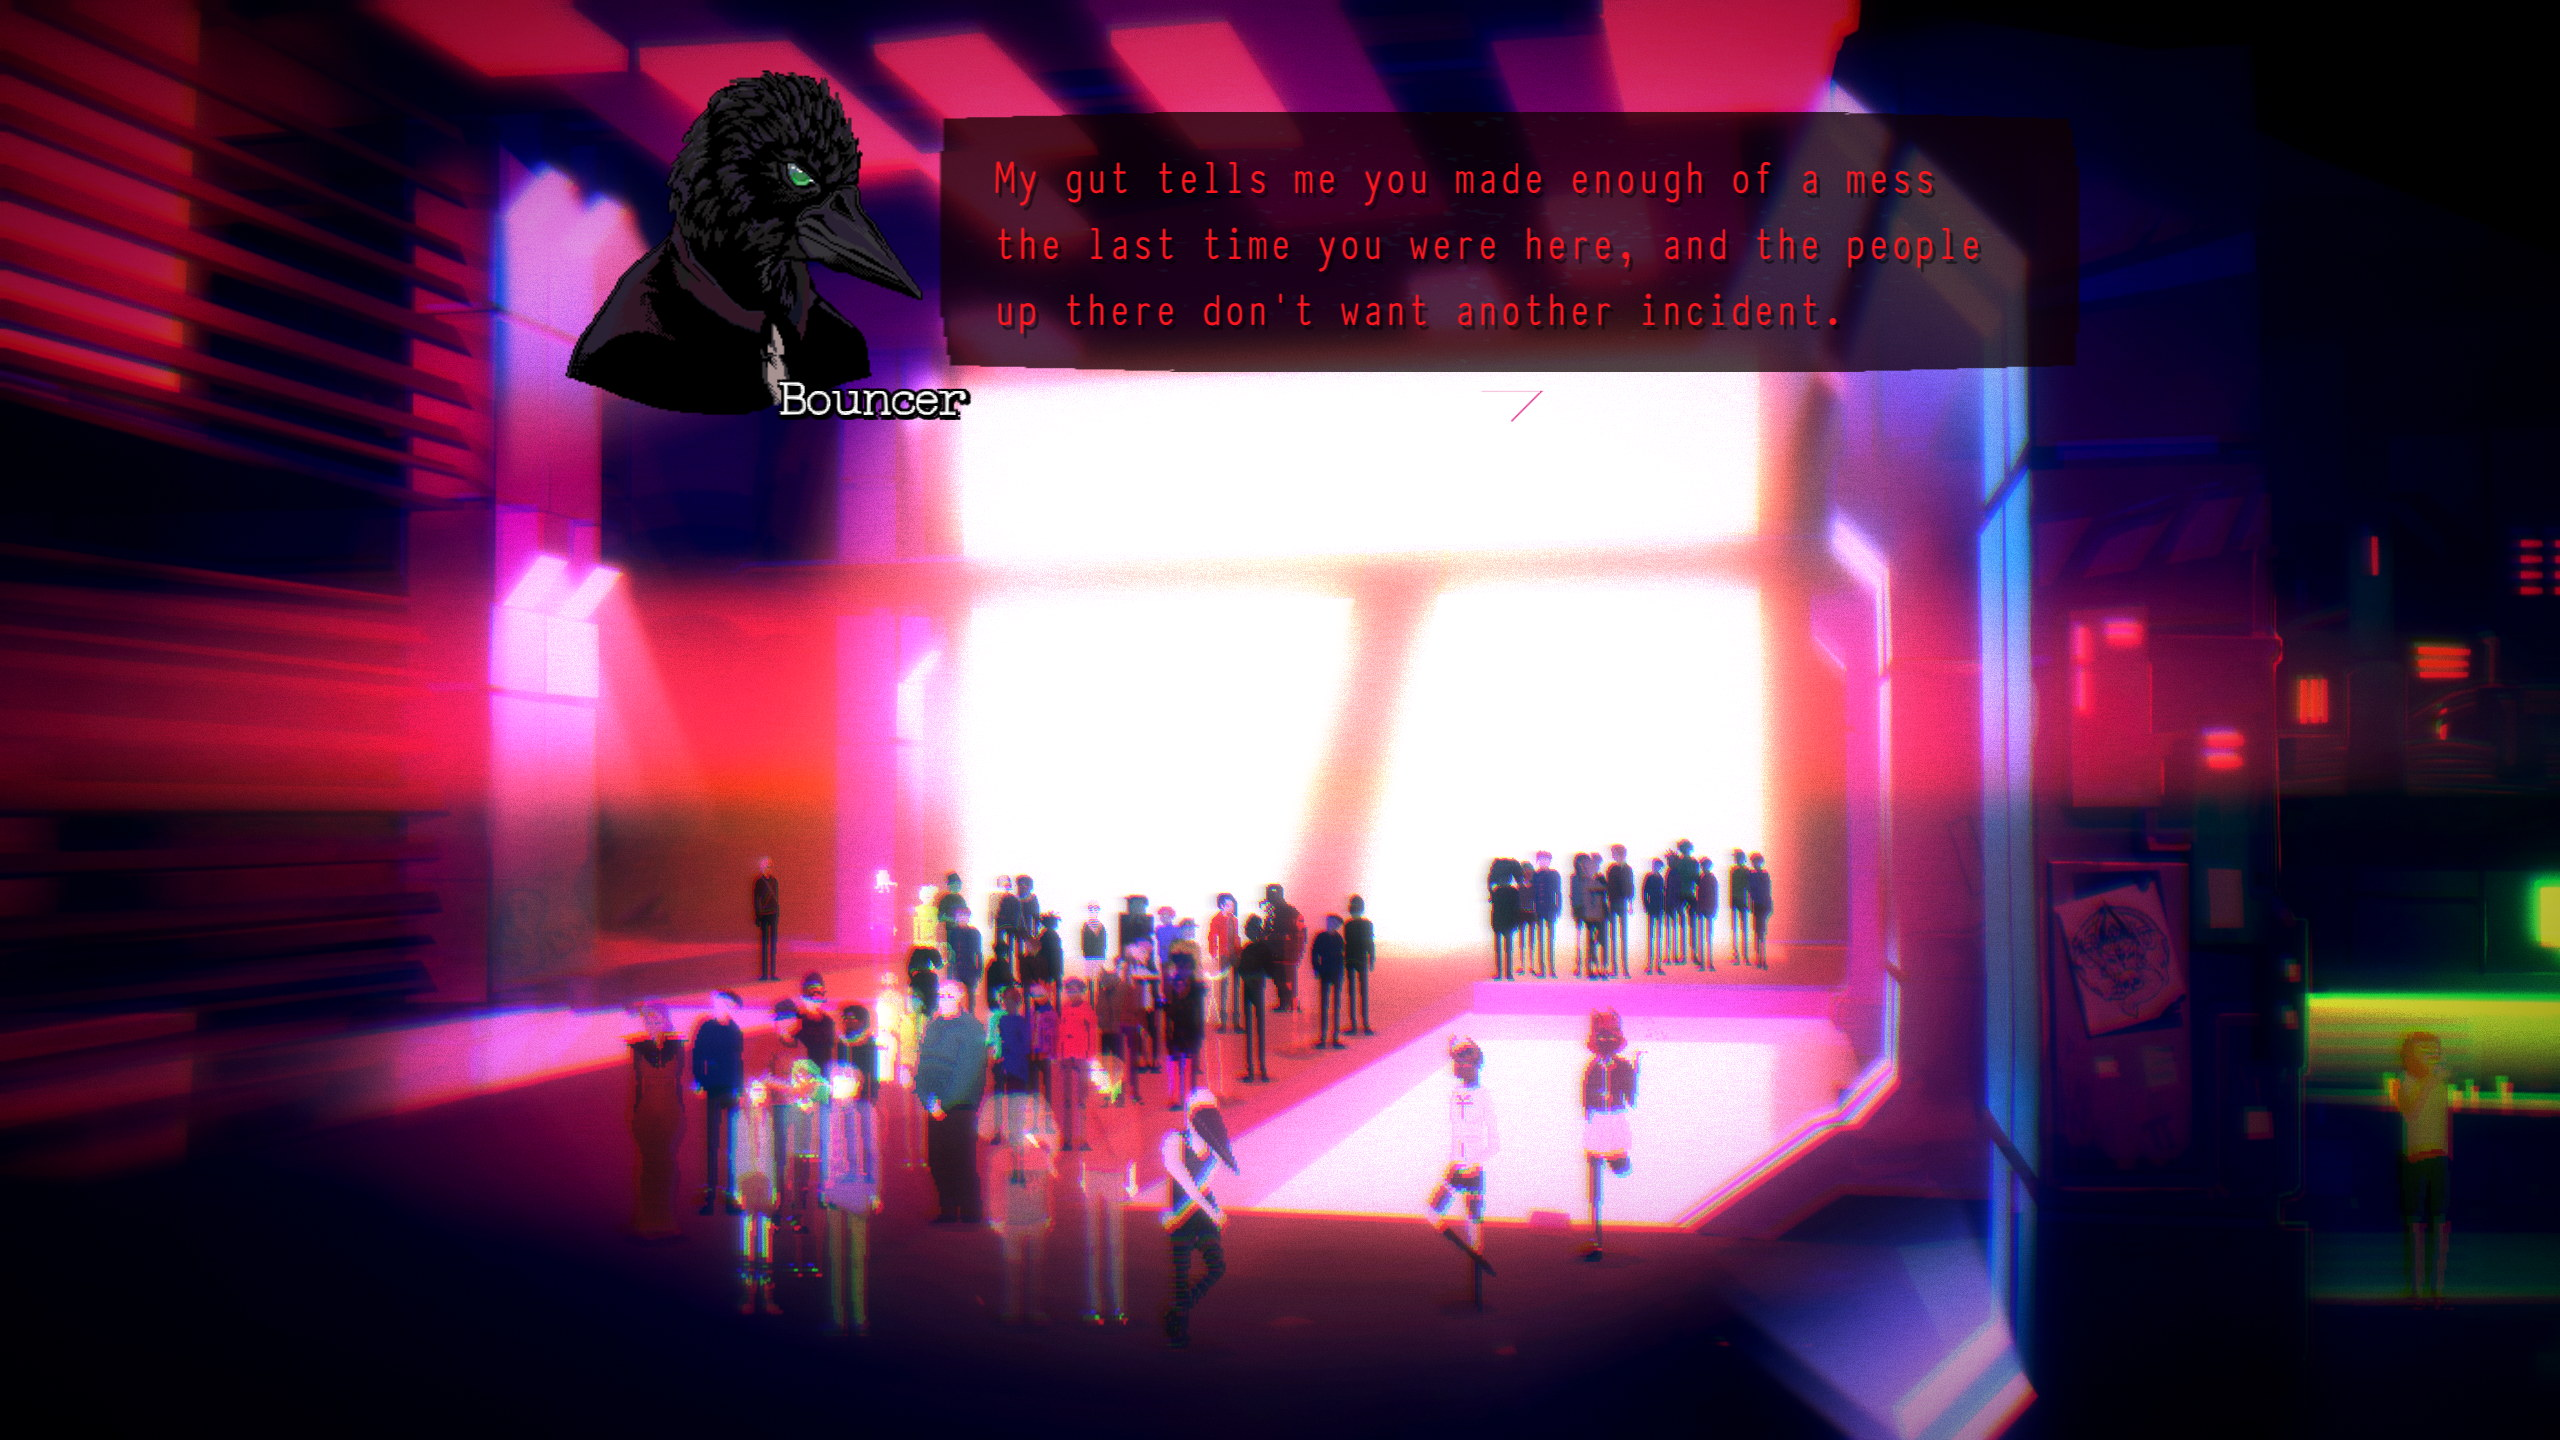 A queue outside a club in Void And Meddler. A bouncer who looks like a raven is denying the player character's entry on the basis that they made too much mess last time.